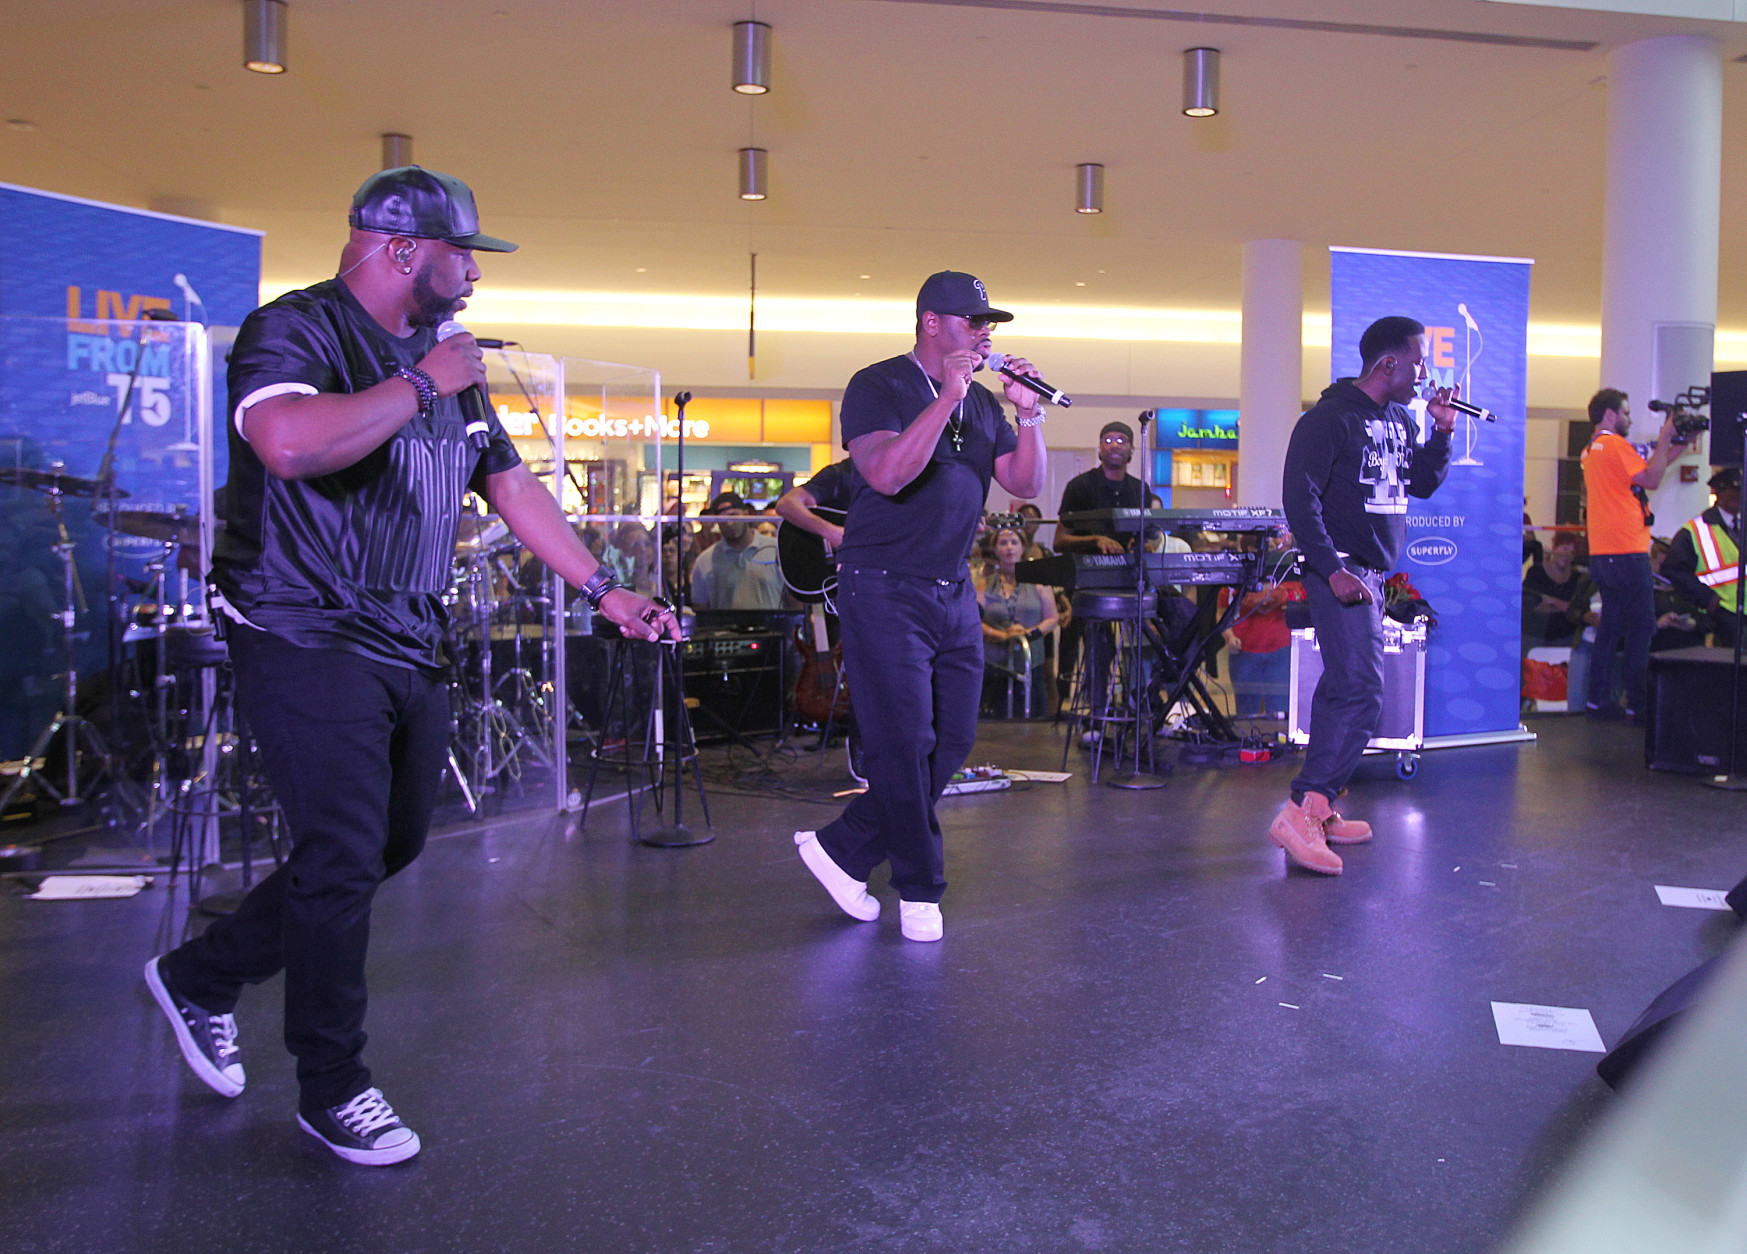 Wanya Morris left, Nathan Morris and Shawn Stockman of Boyz II Men perform at JetBlue's Live From T5 at JFK Airport on Thursday, Sept. 24, 2015, in New York. (Photo by Donald Traill/Invision/AP)